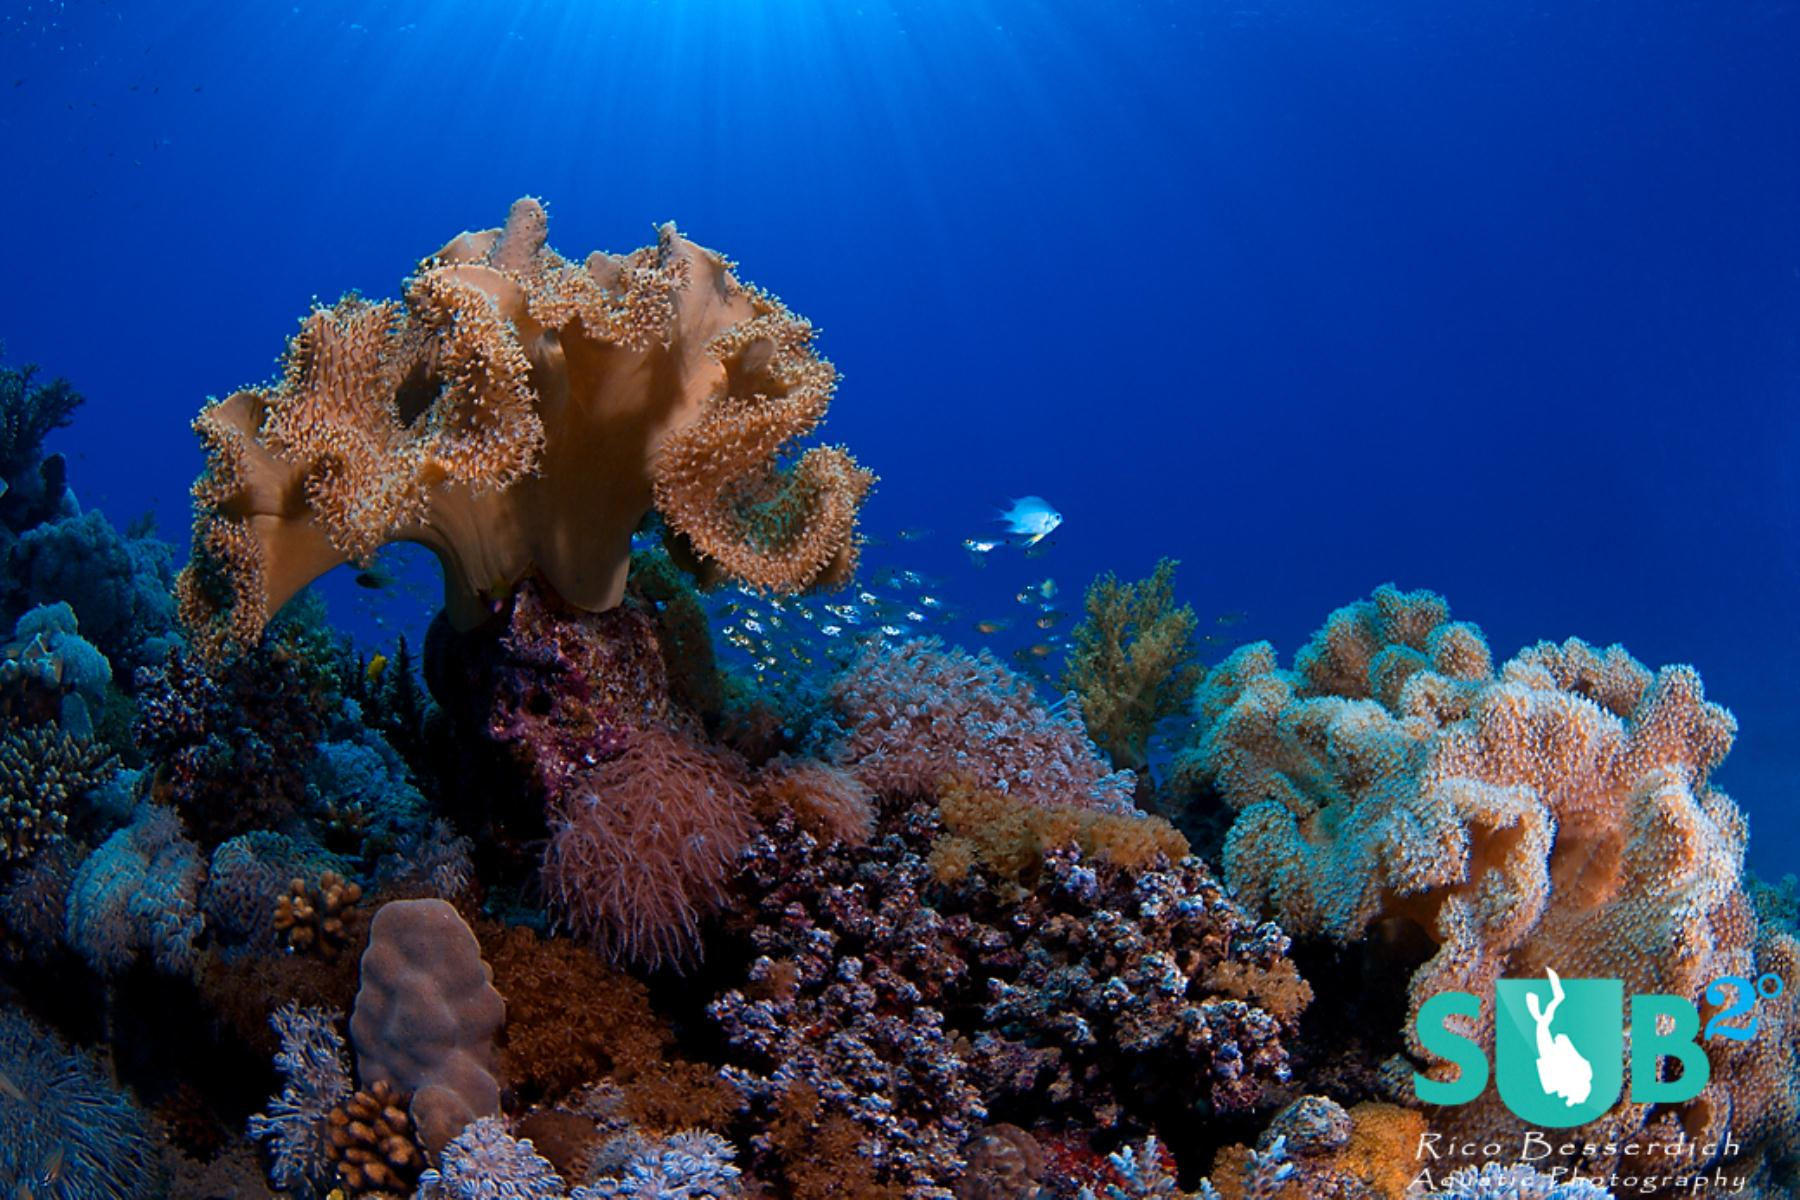 Corals are great subjects to start with for uw image composition according to the rule of thirds.